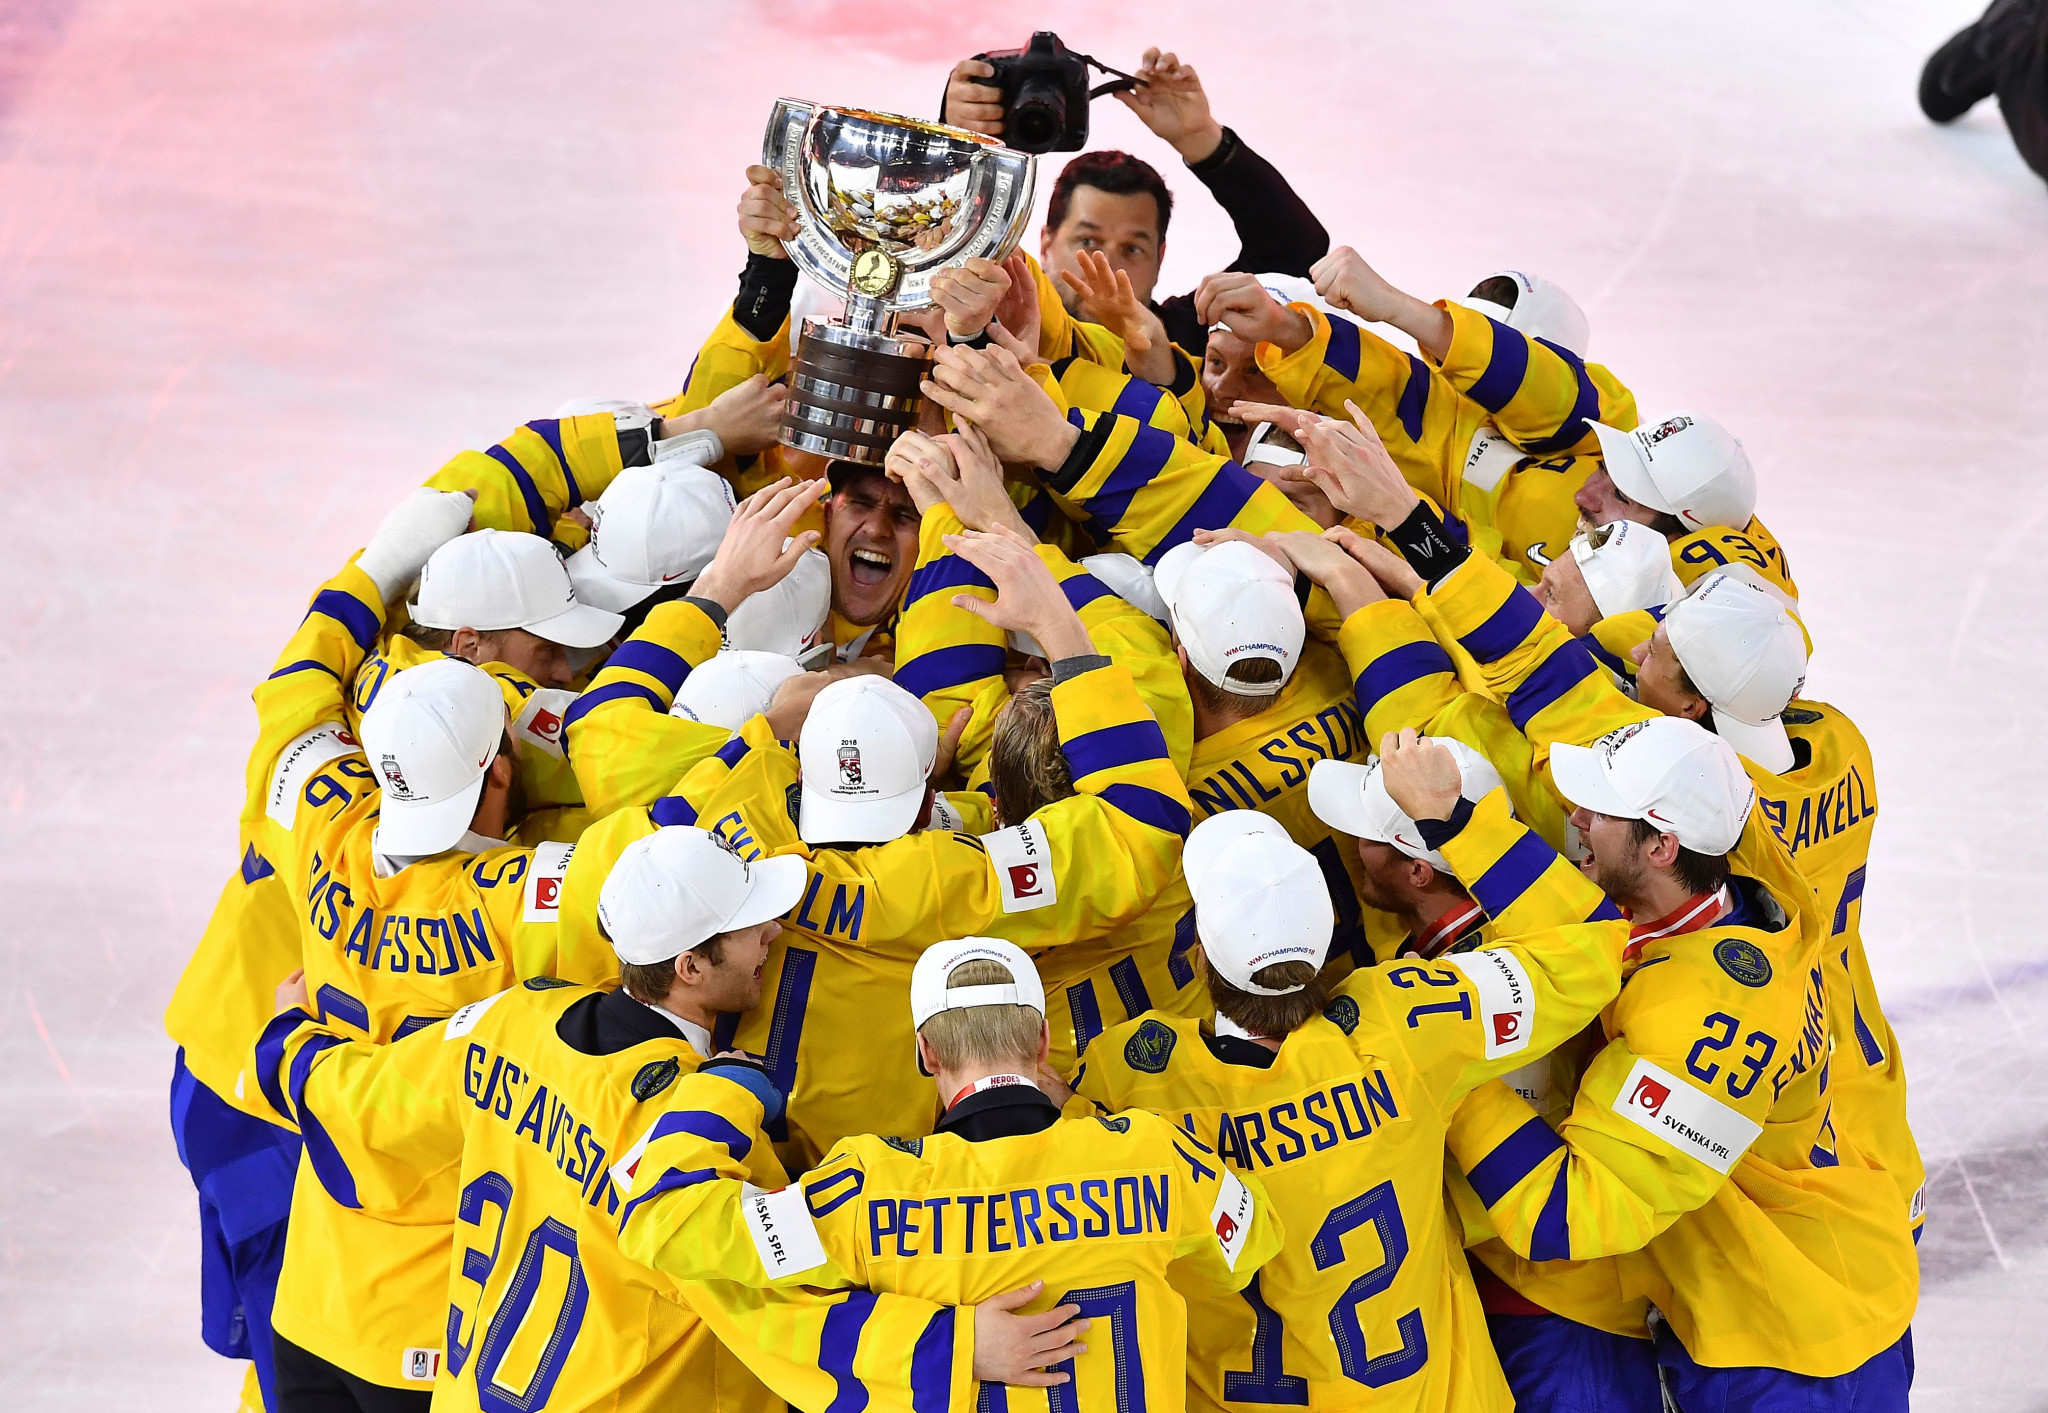 Sweden defended their World Championship title ©Getty Images